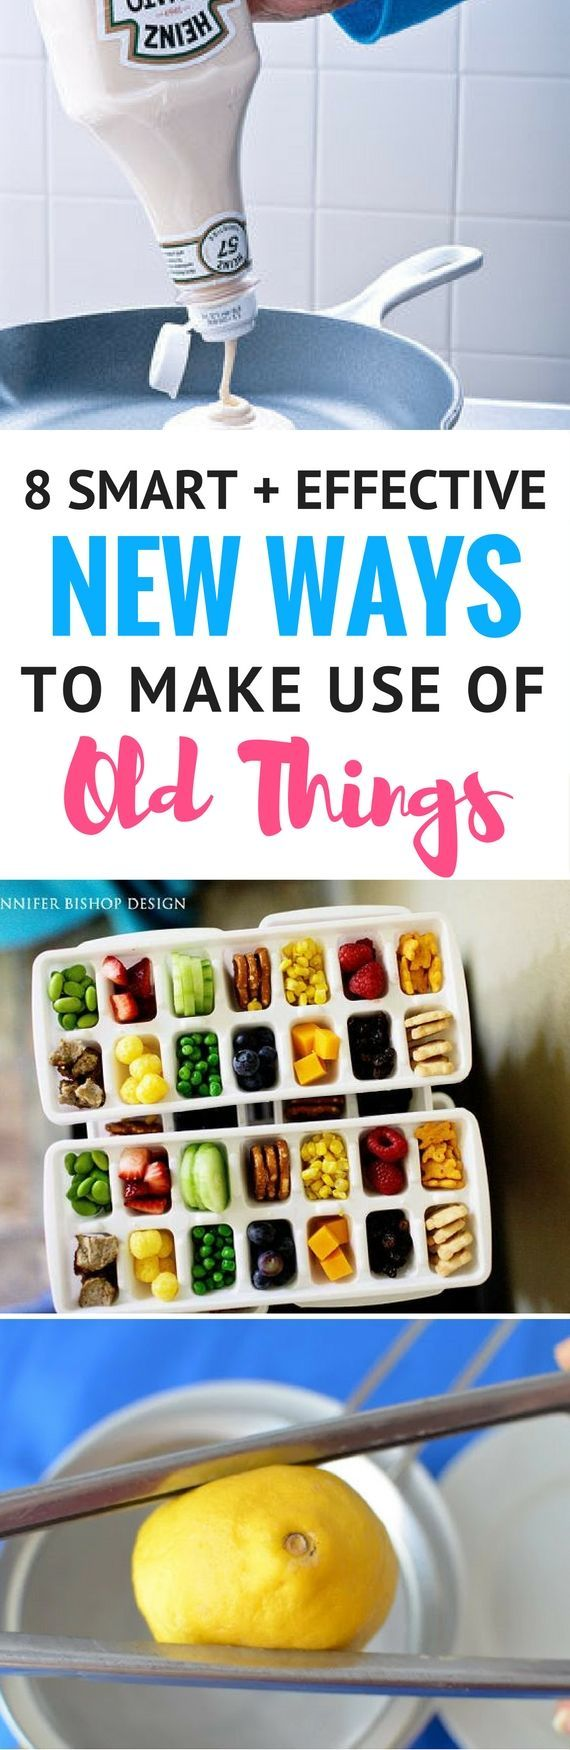 8 Creative And Fun New Ways To Use Old Things - Looking for ways to reuse ordina...